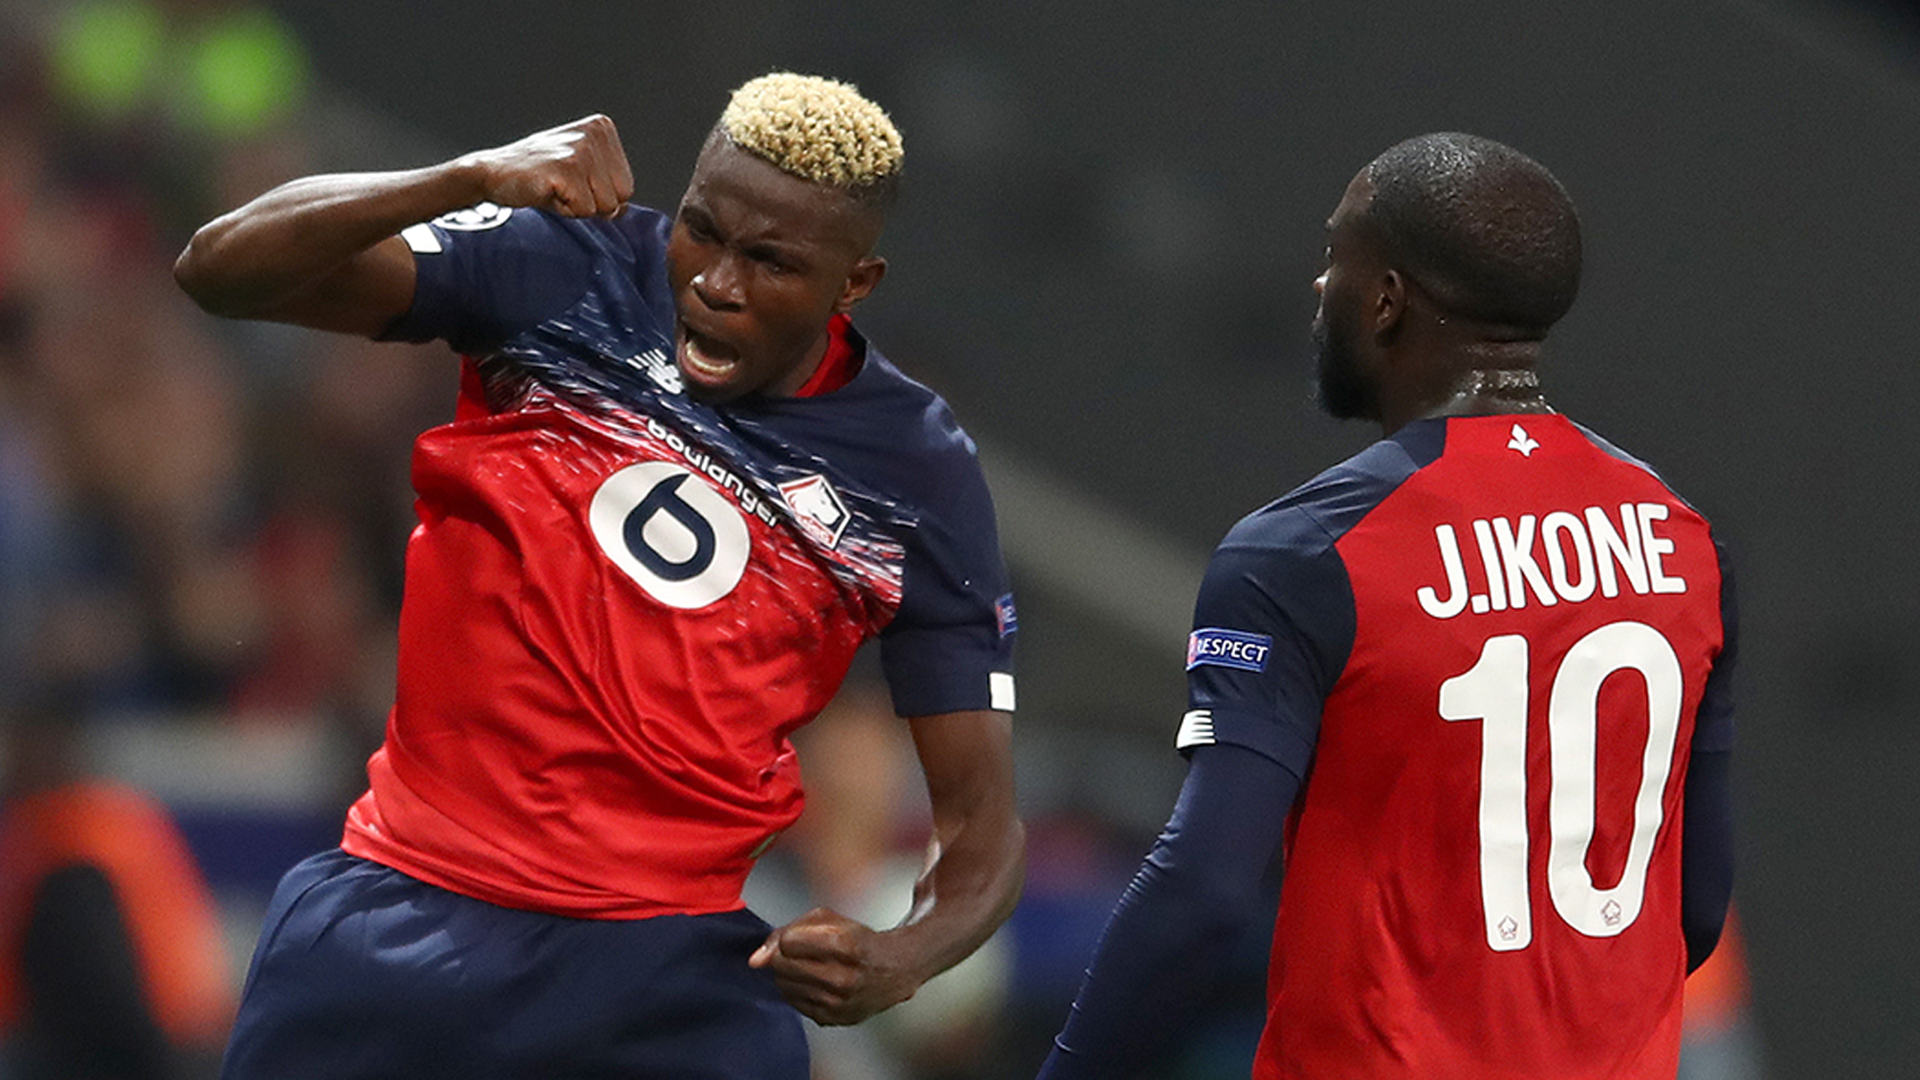 'Osimhen is like Aubameyang and obsessed with goals like Cavani' - Lille coach Galtier